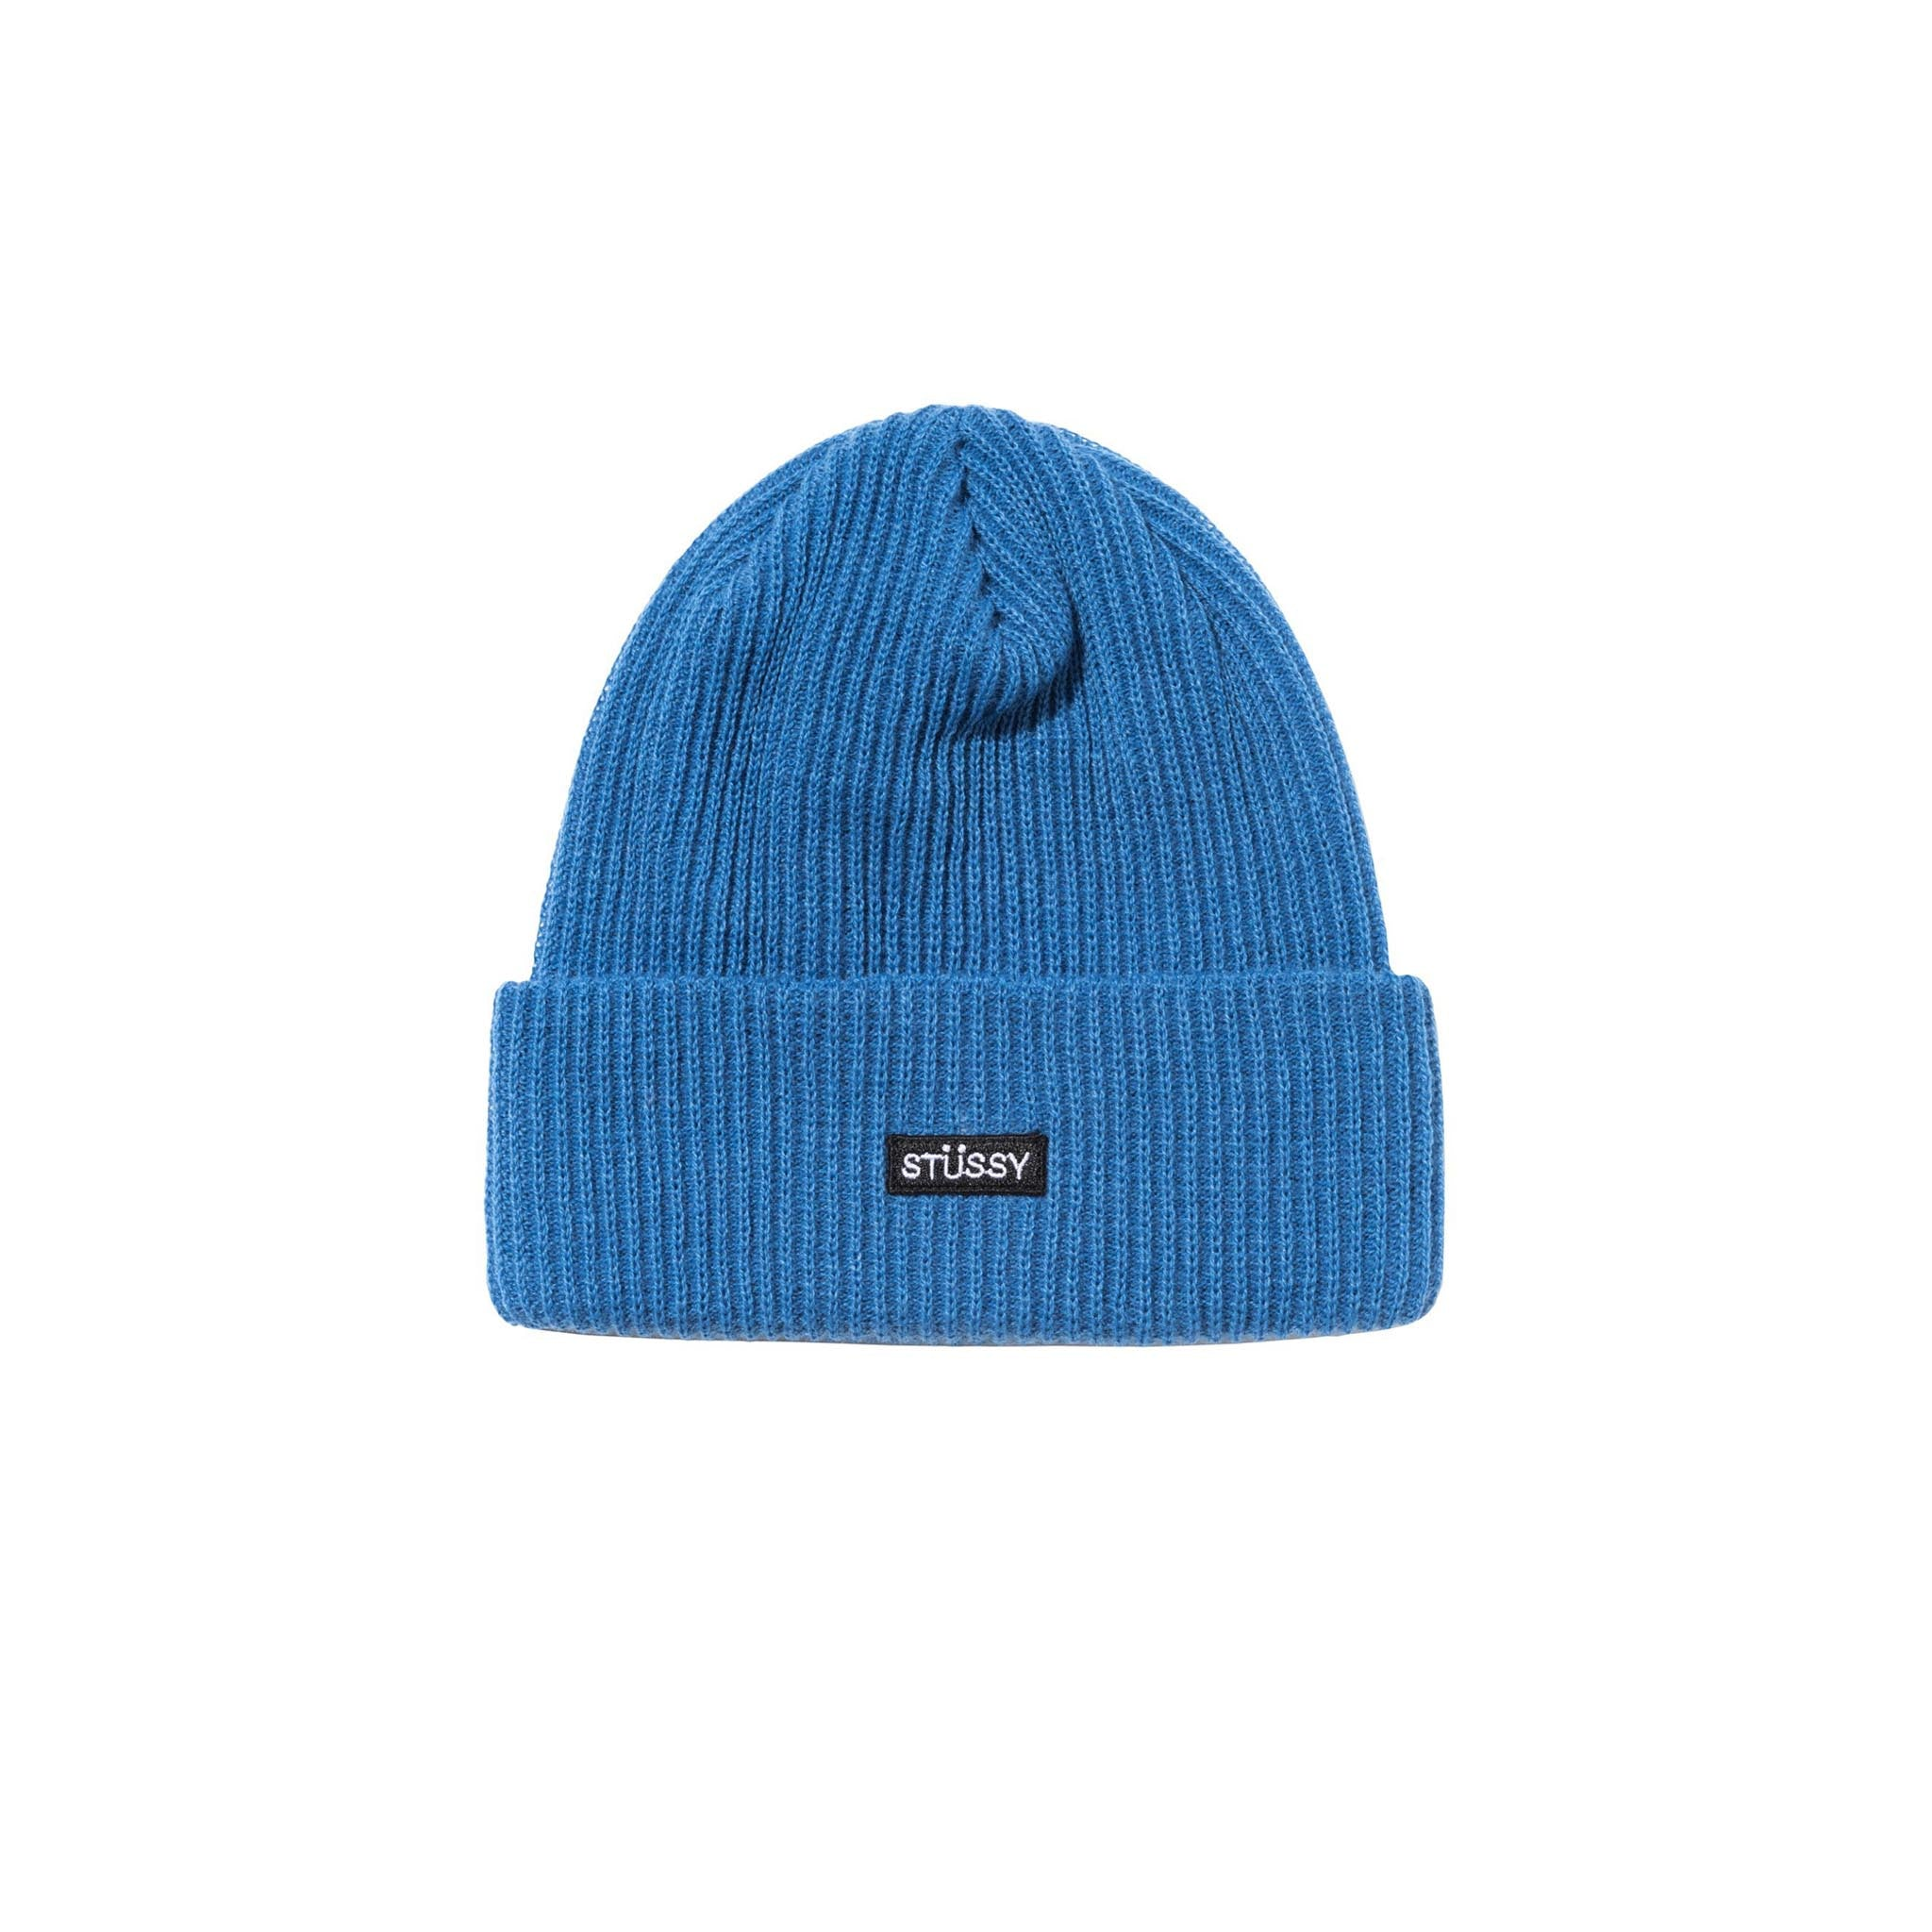 Stussy Small Patch Watchcap Beanie Blue